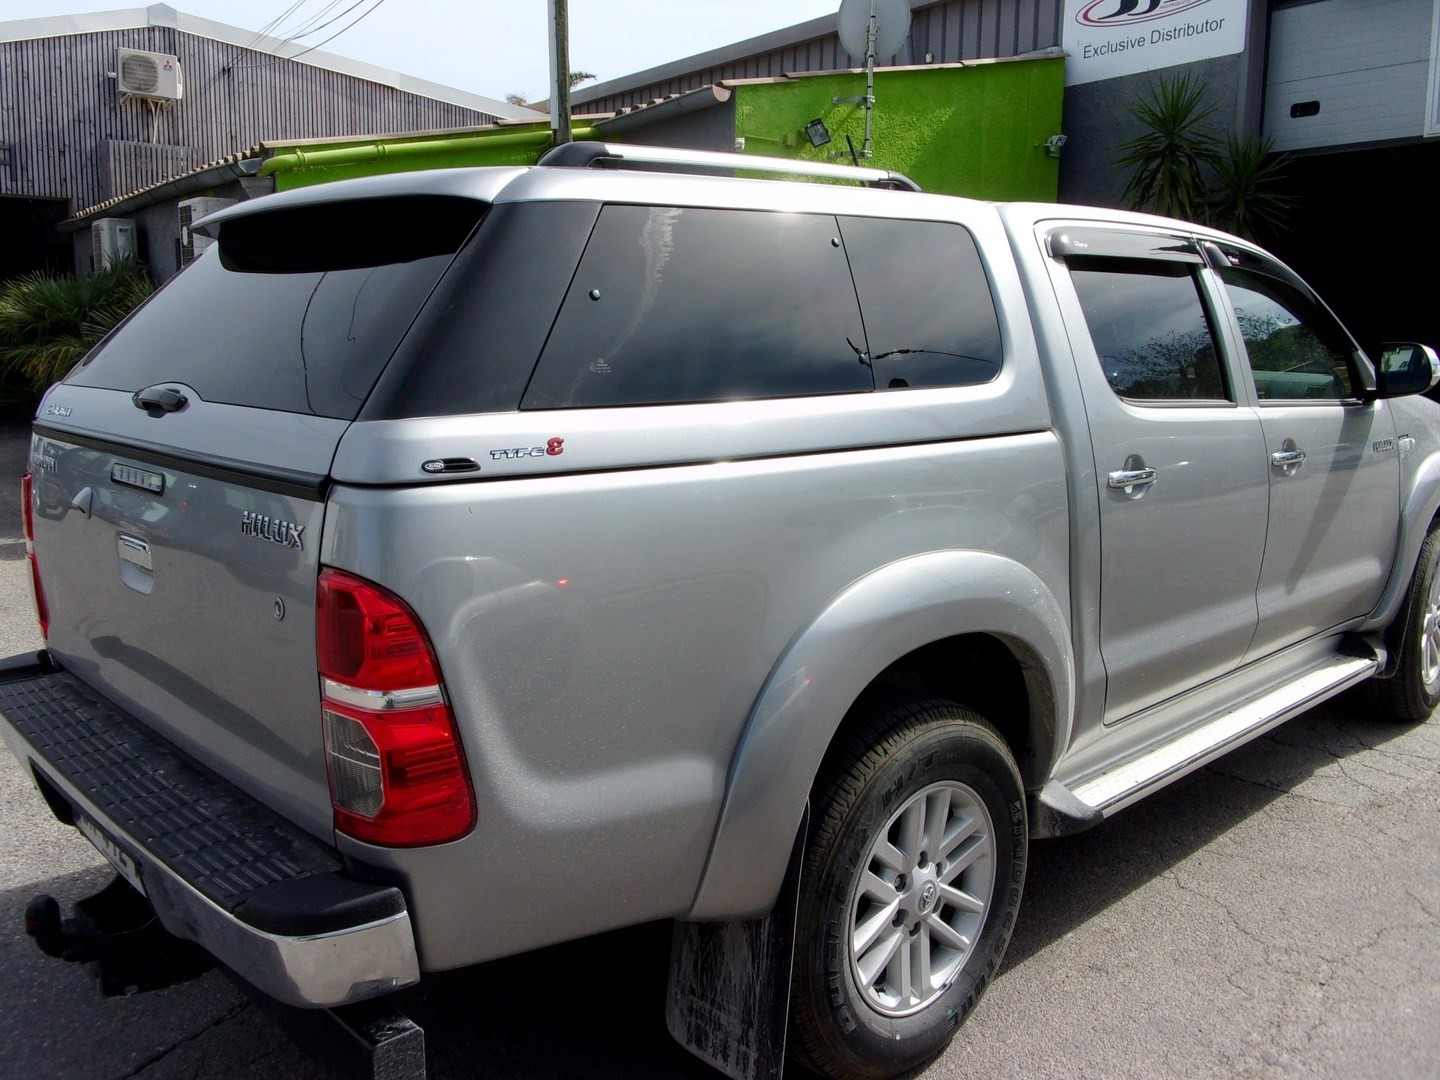 Hard-Top Hilux - Luxe Type E - (Double Cabine de 2006 à 2015)